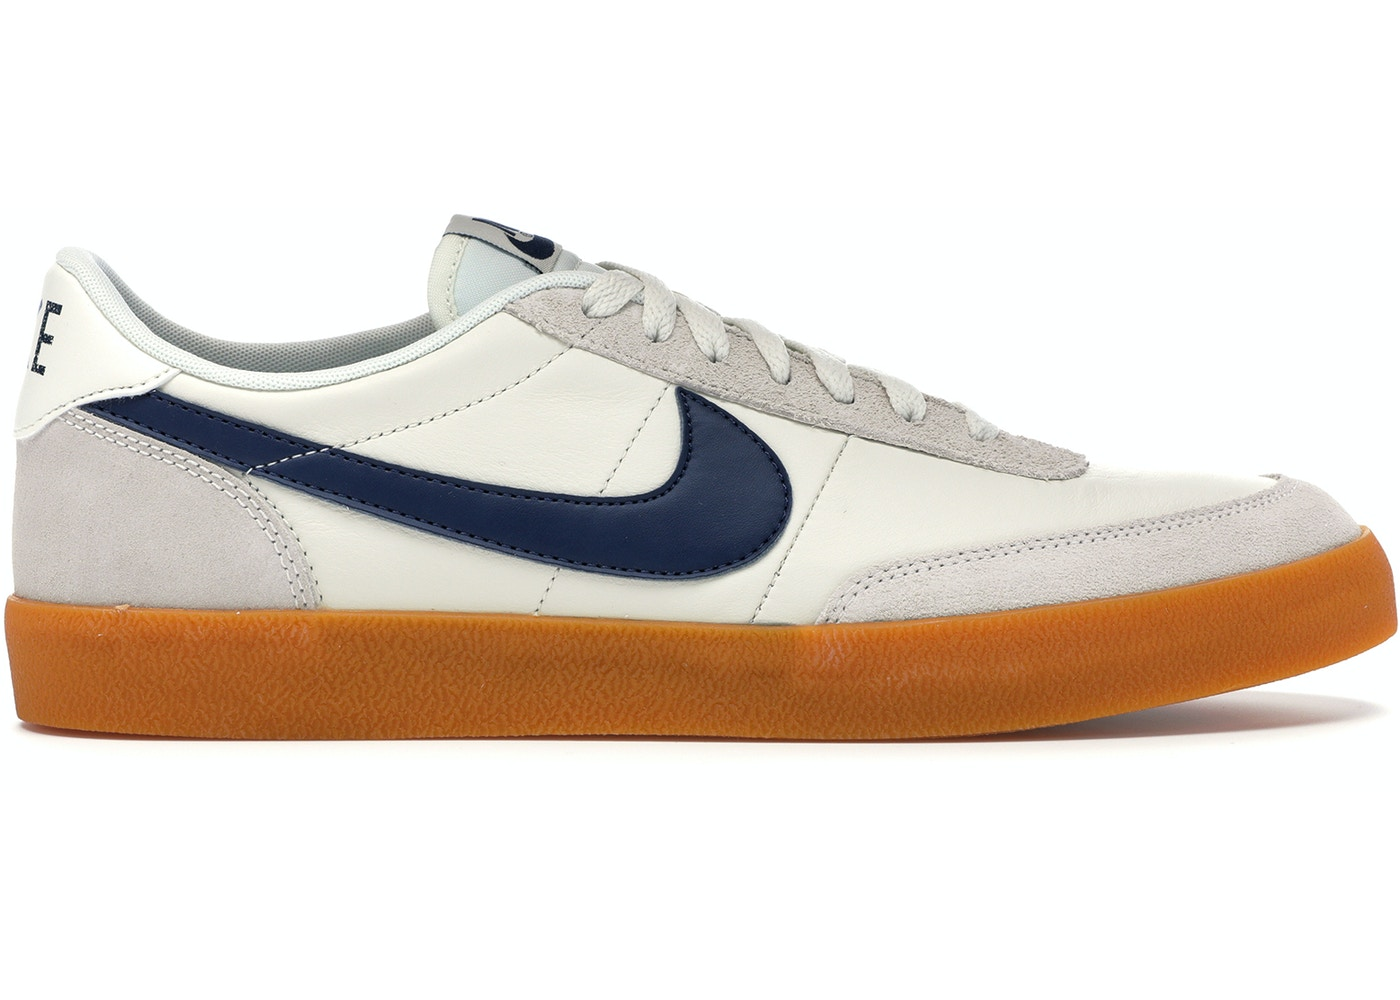 sale retailer a996f c6b4e Nike Killshot 2 J Crew Sail Midnight Navy - 432997-107